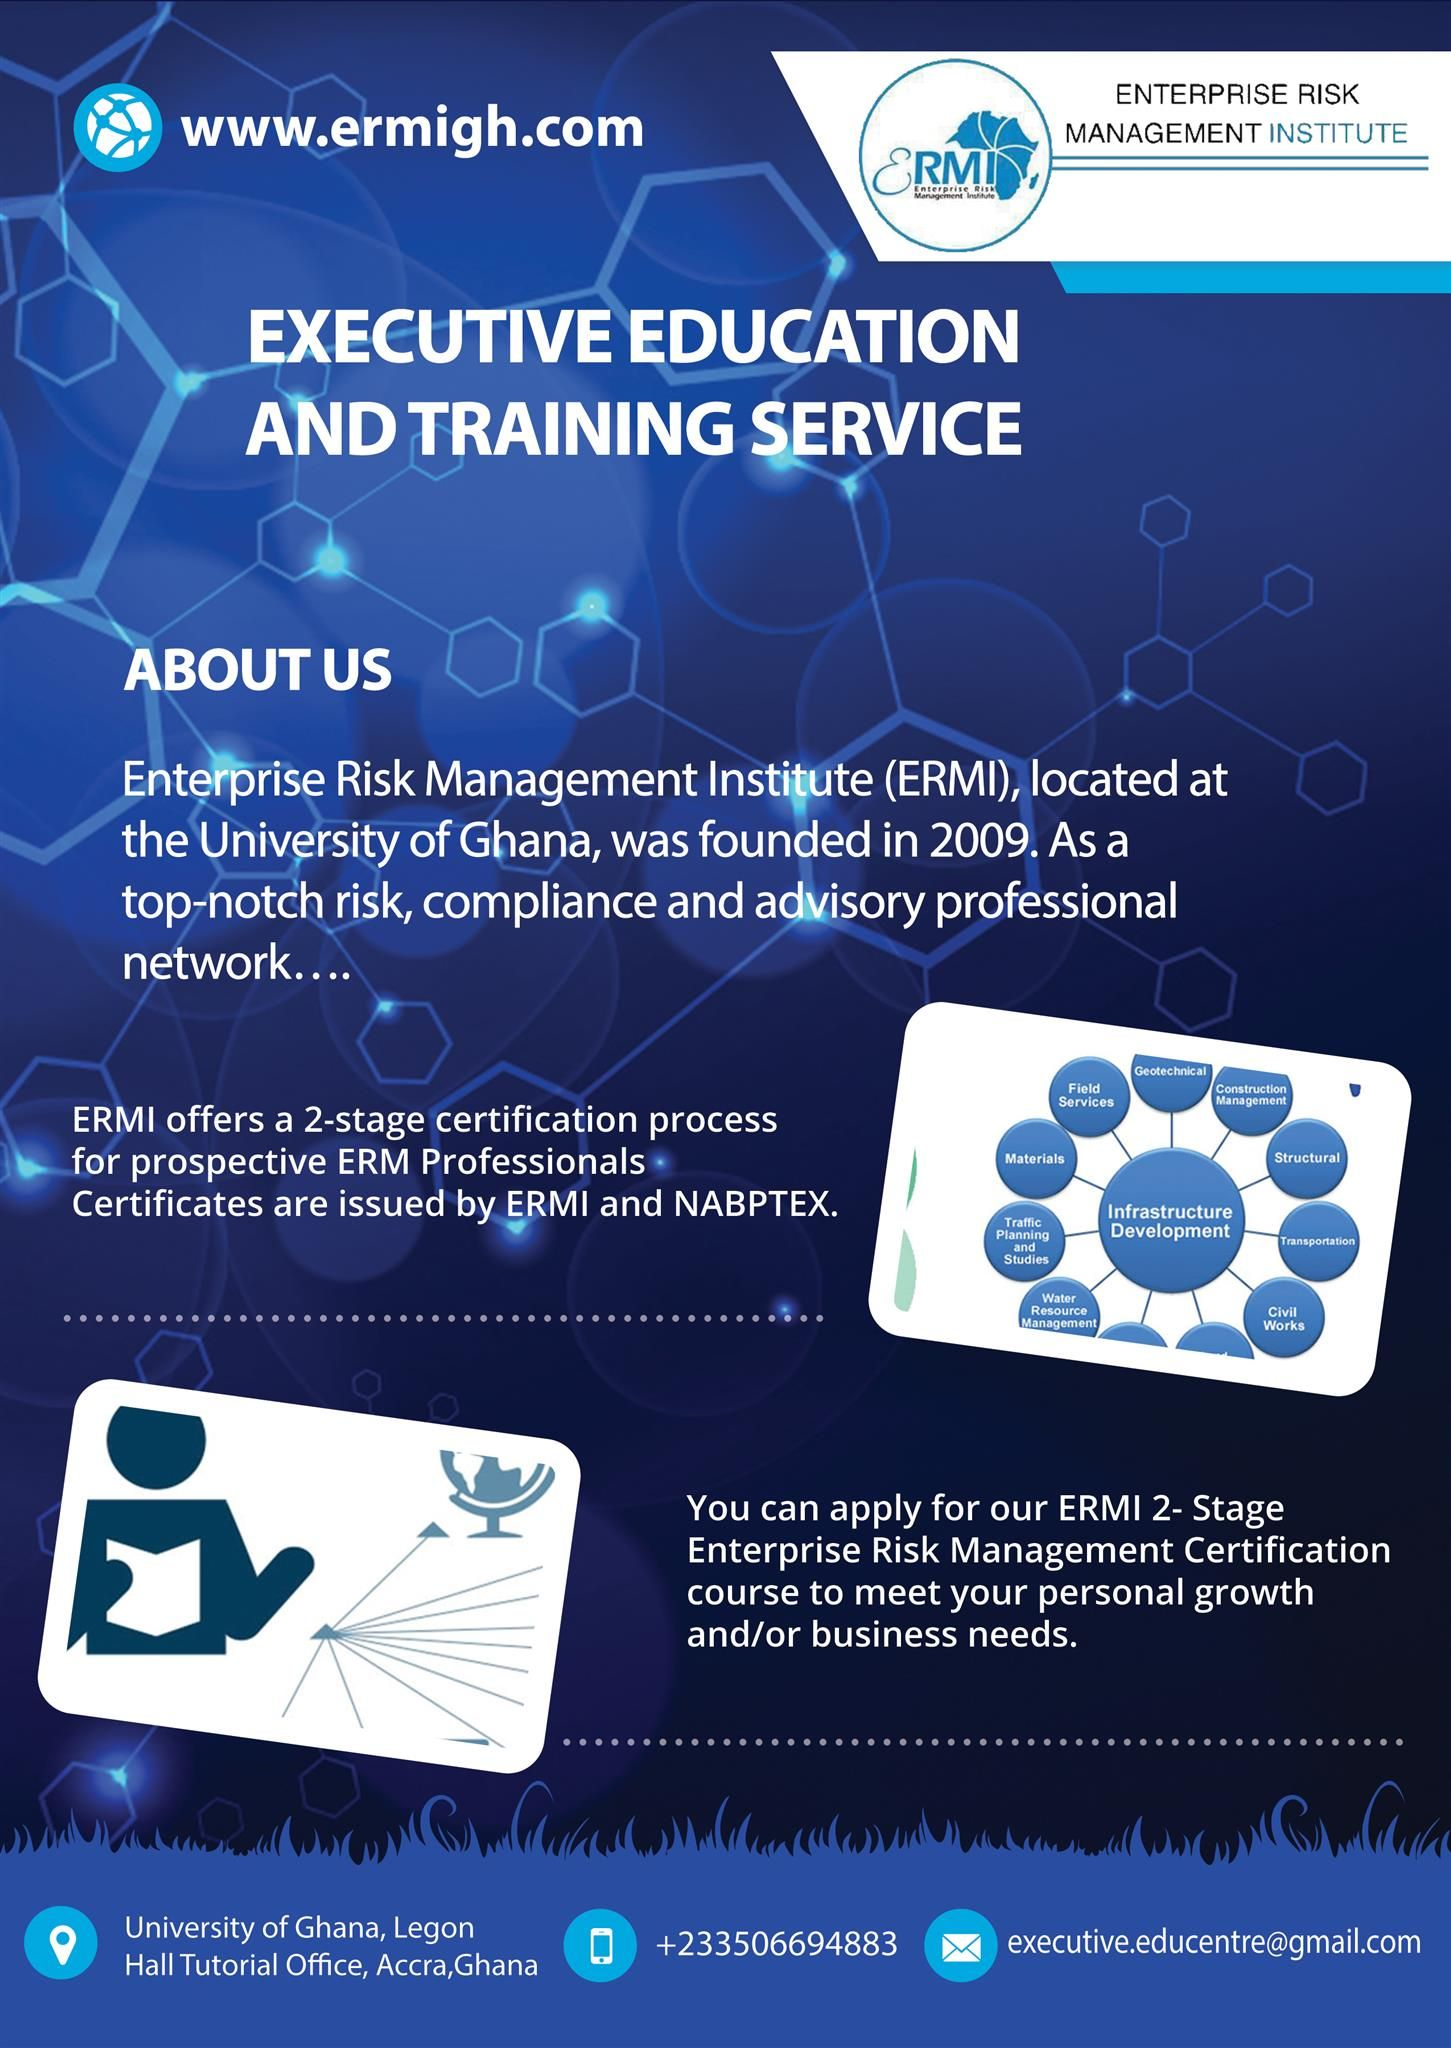 Executive Education And Training Service Accra Executive Education Education And Training Risk Management